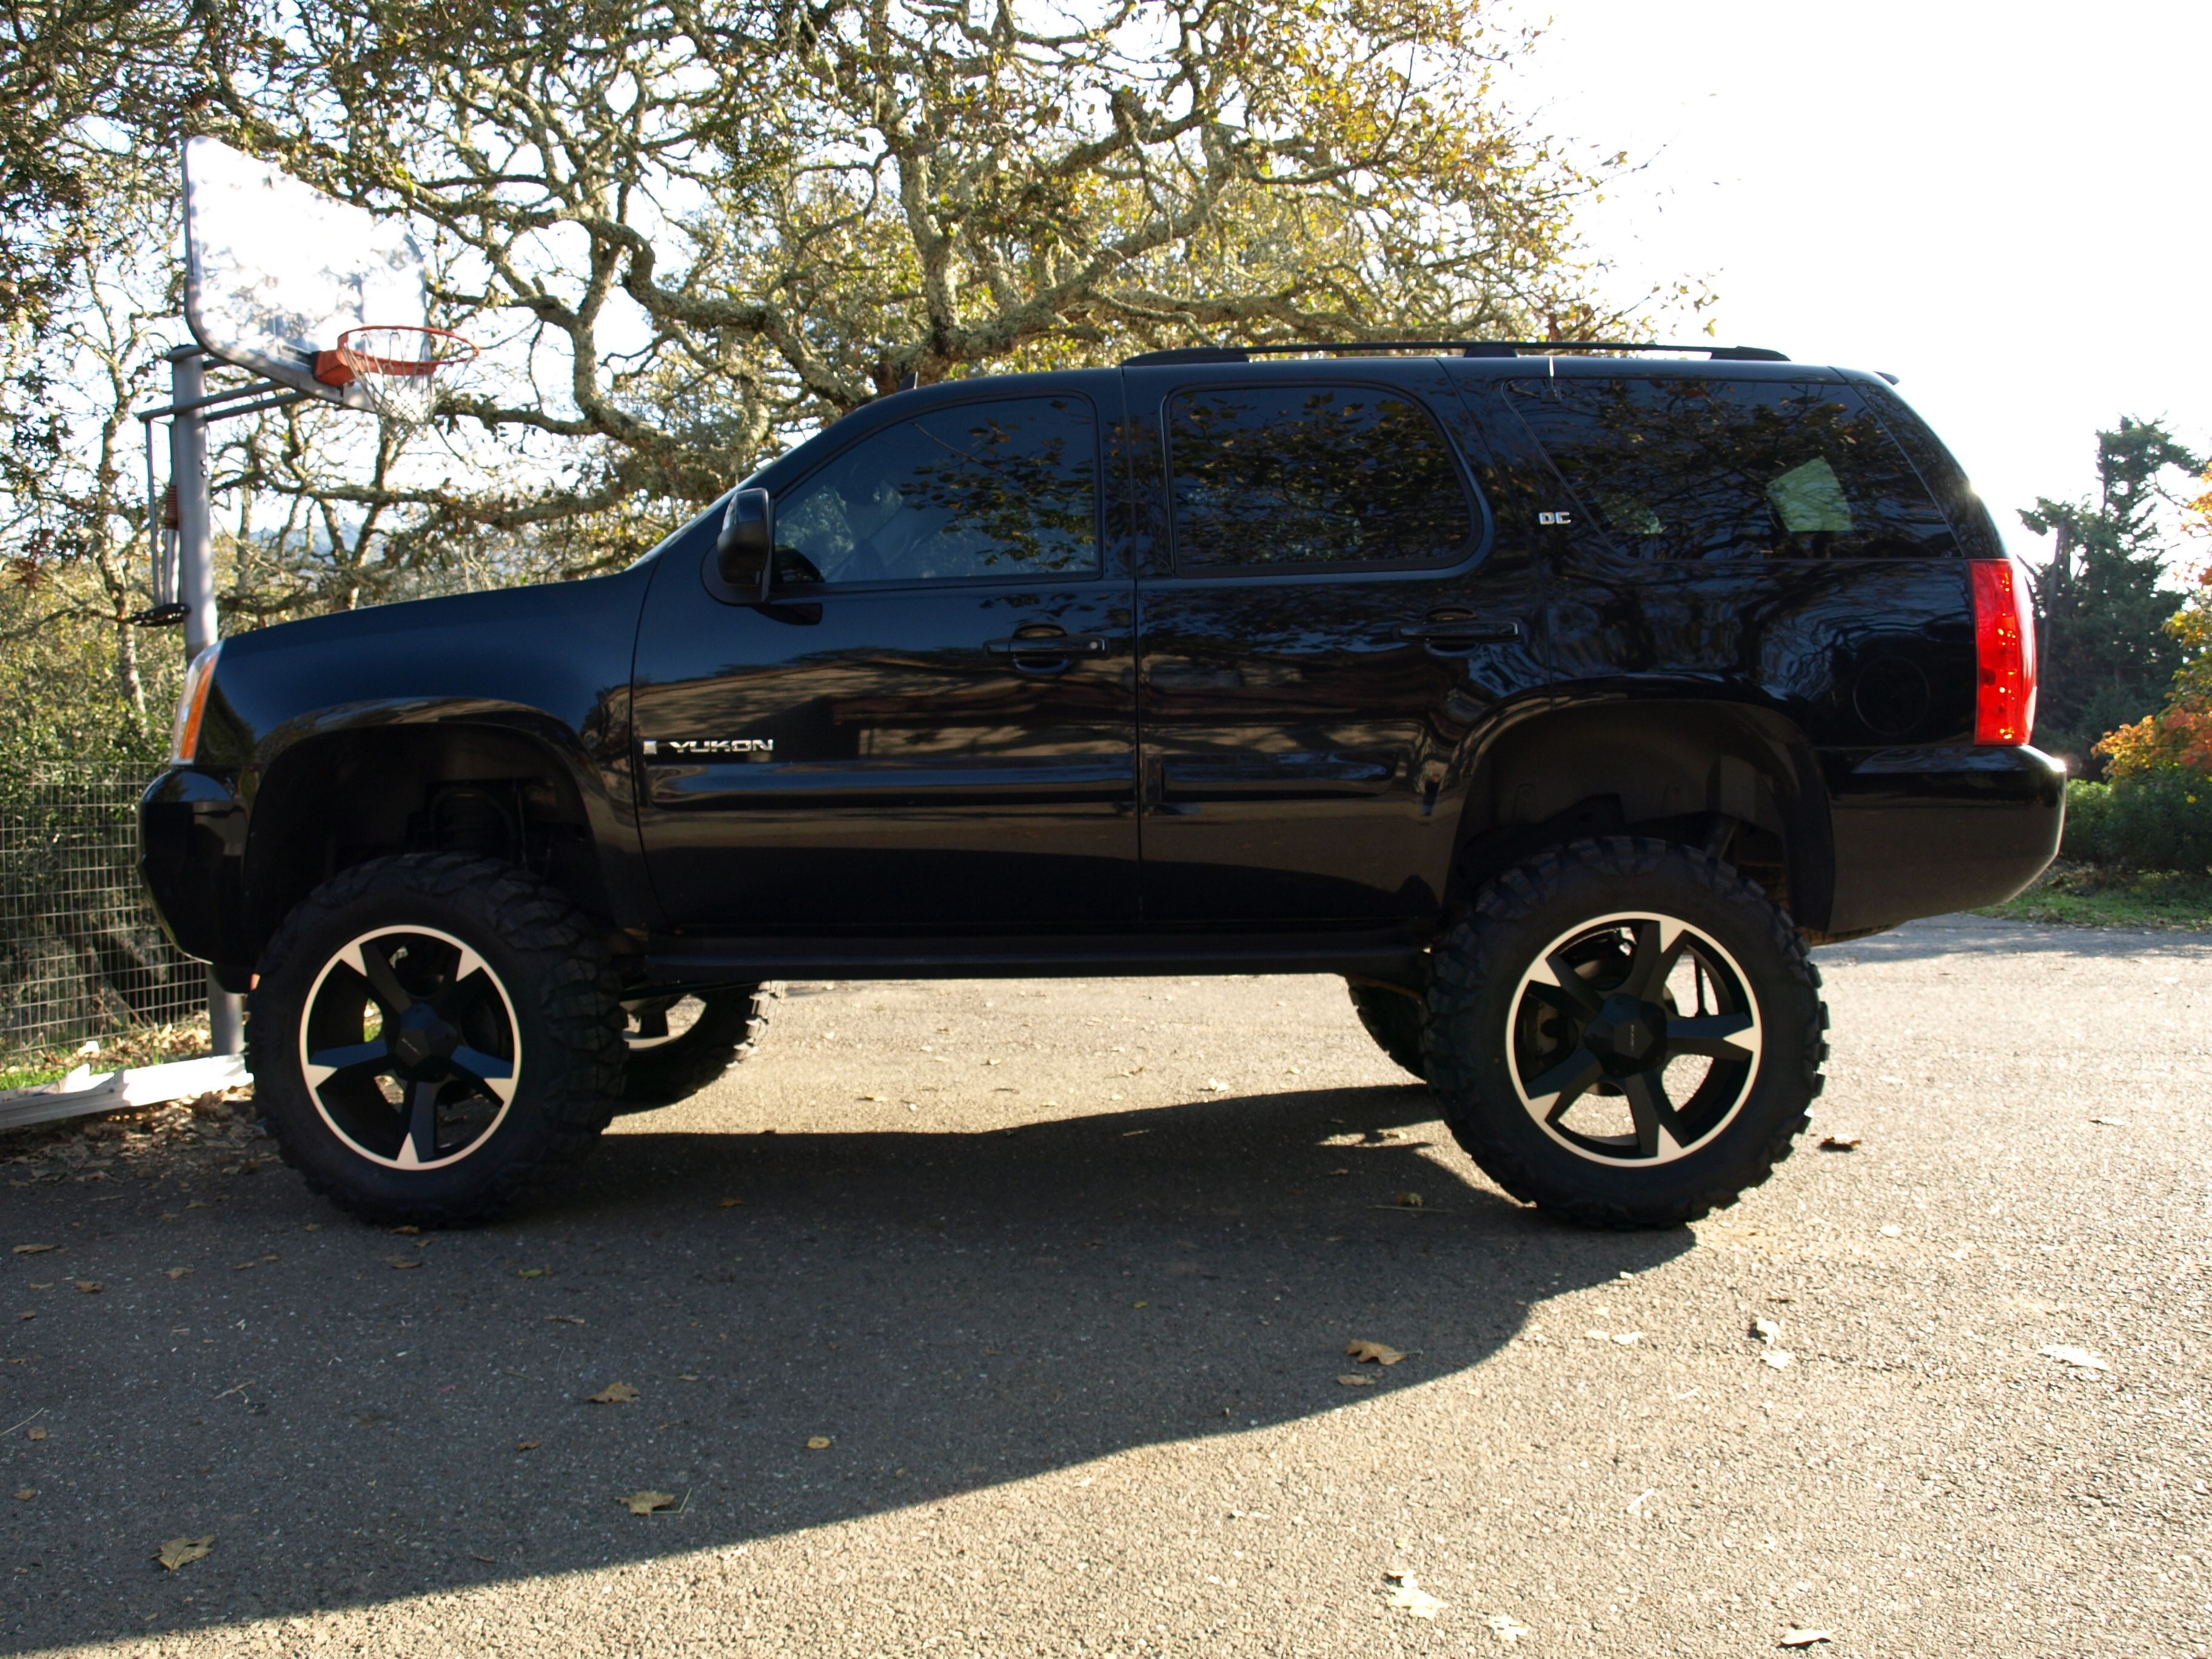 2007 Chevy Silverado For Sale In Houston Tx Lifted chevy